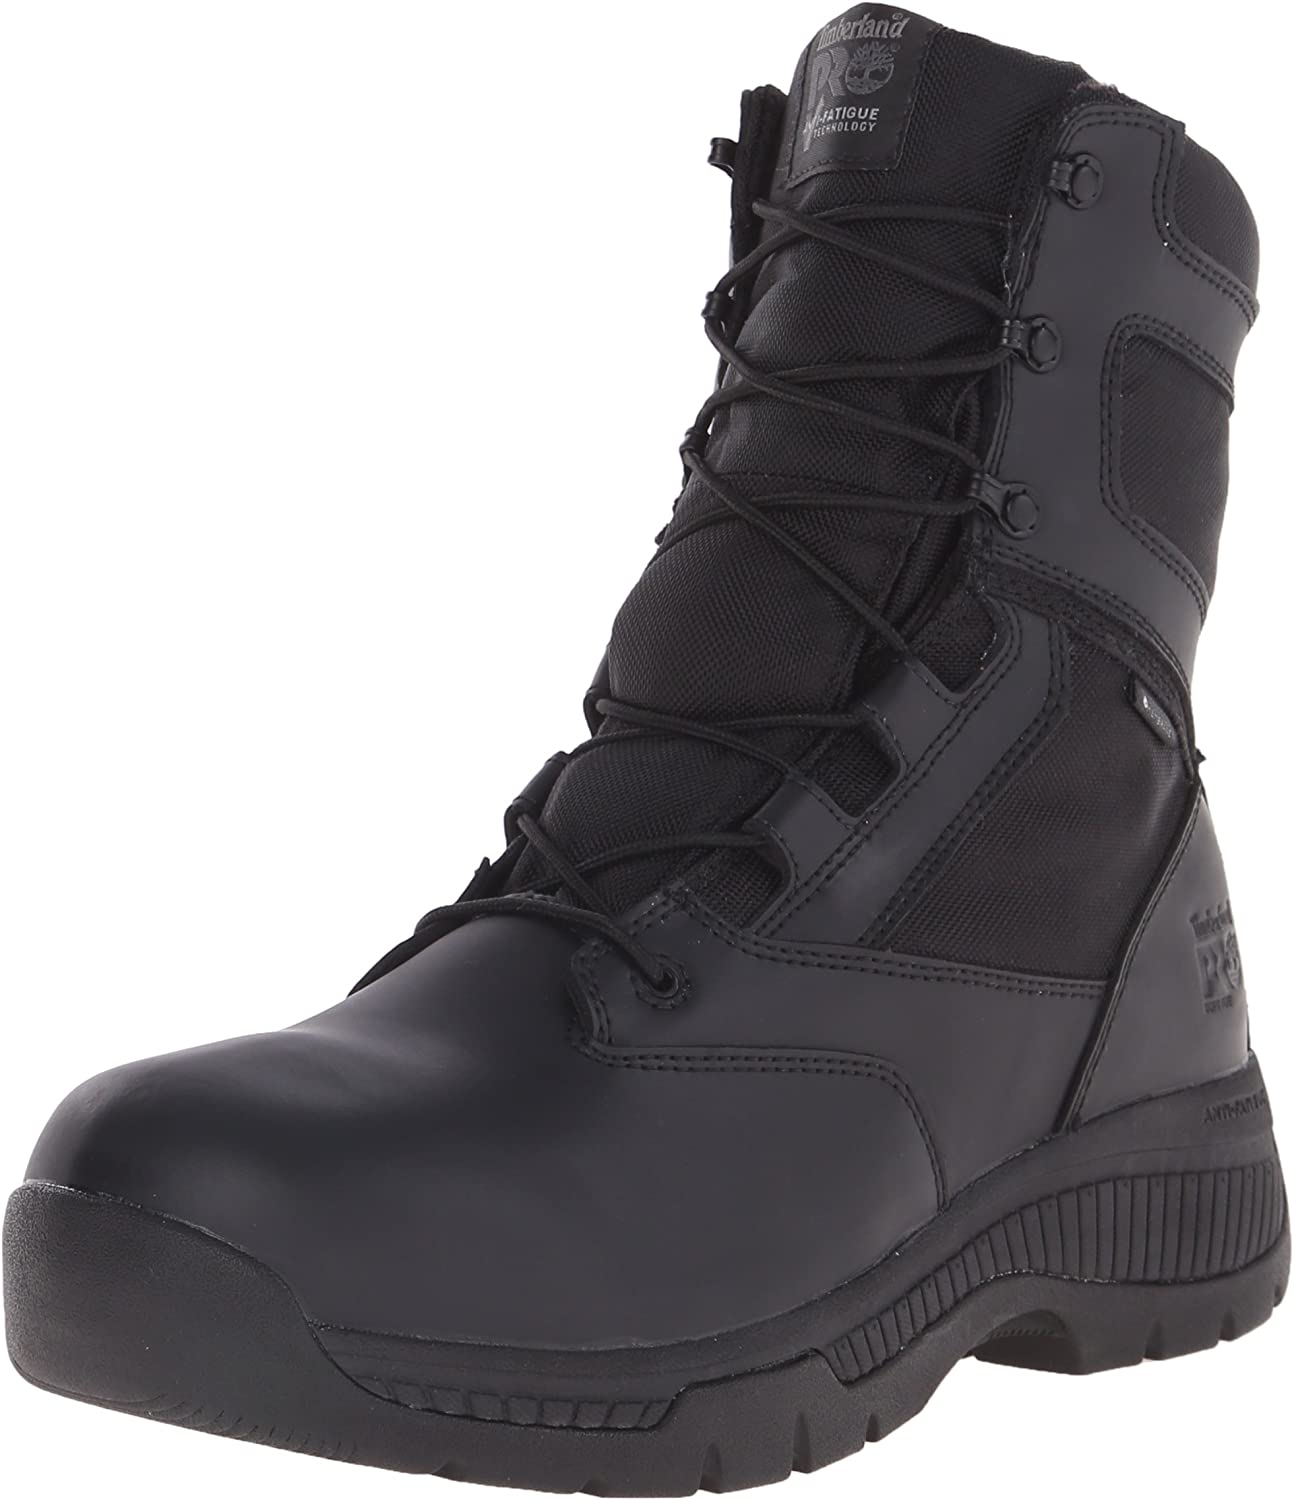 Timberland PRO Men's 8 Inch Valor Soft Toe Waterproof Side Zip Work Boot, Black Smooth Leather Ballistic Nylon, 14 W US